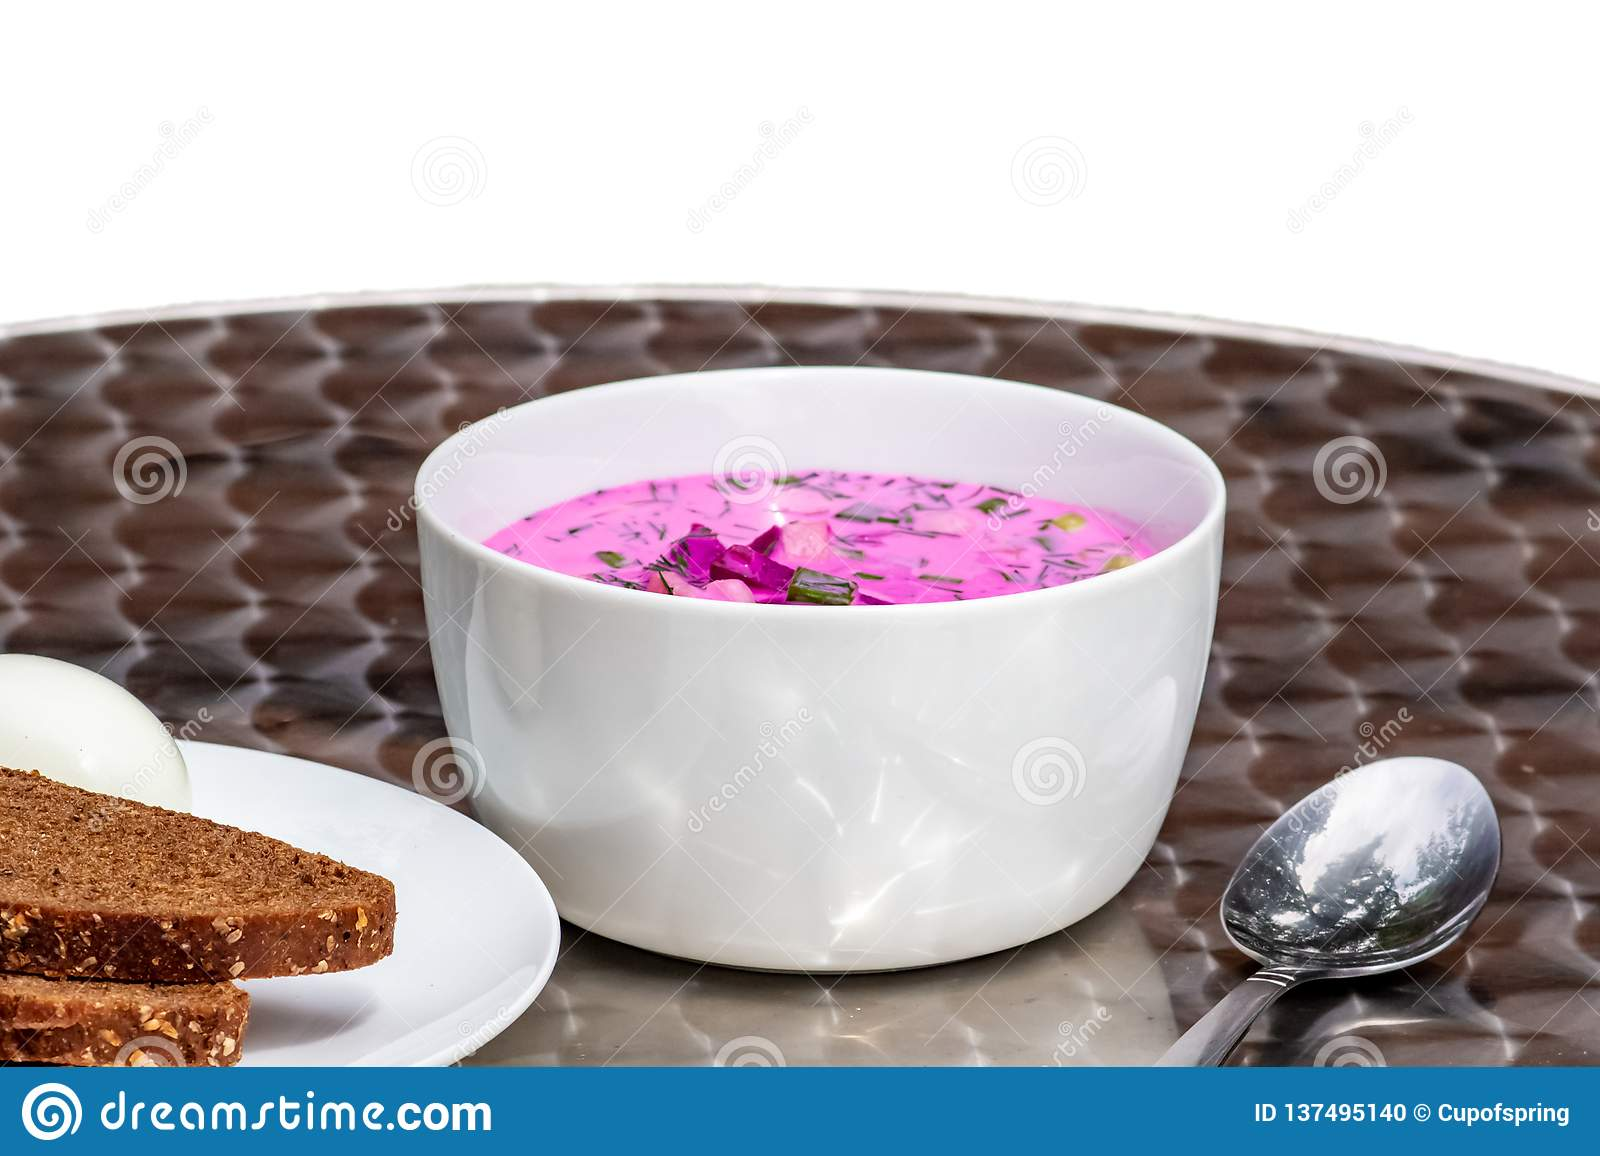 delicious-summer-lithuanian-beetroot-soup-dark-bread-egg-isolated-white-137495140.jpg